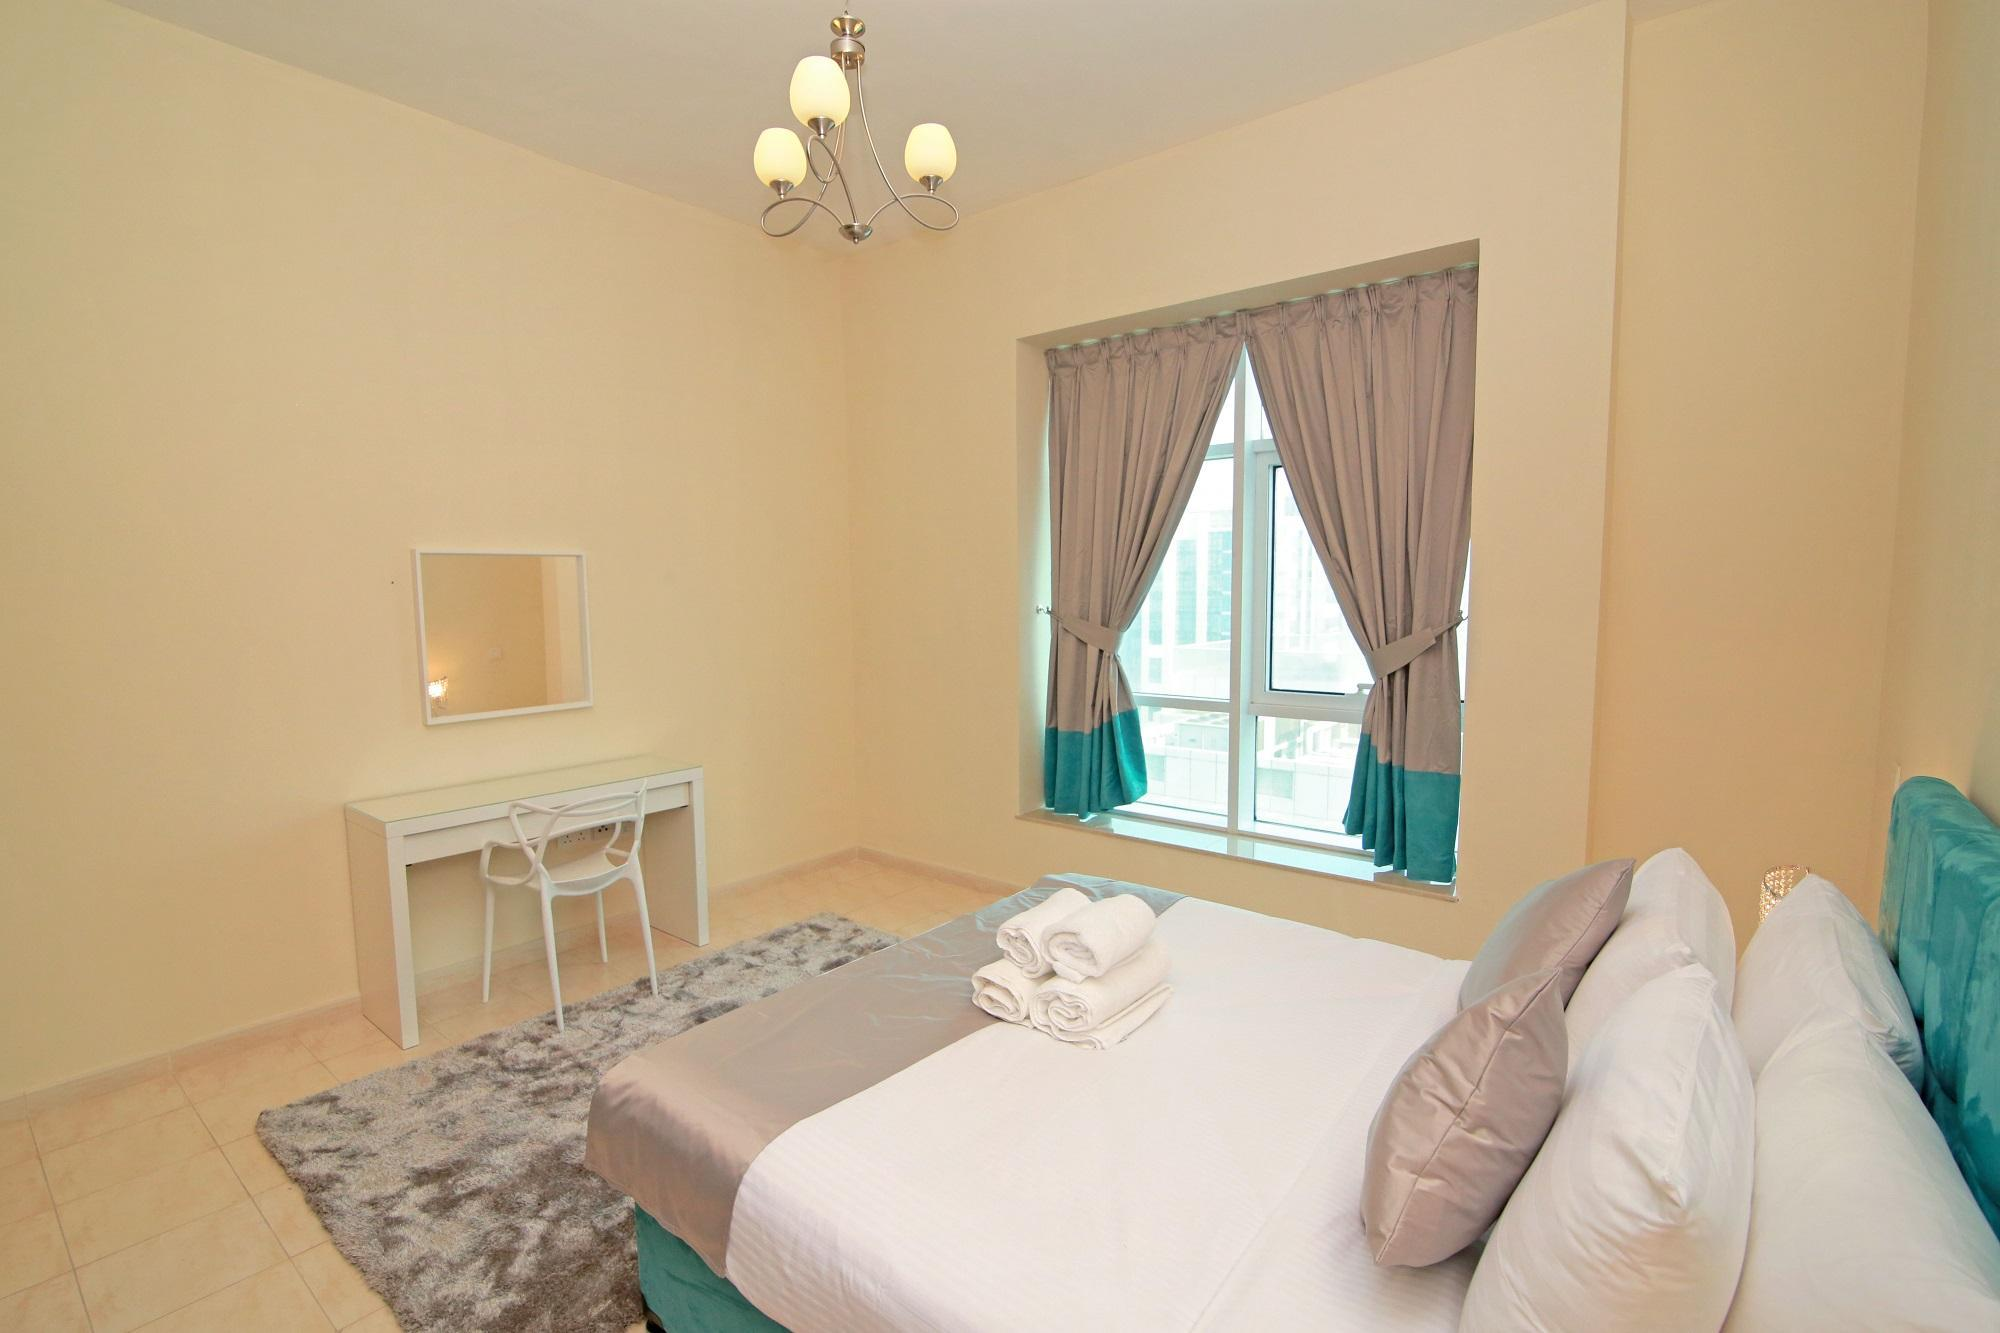 Classy 3bedroom Apartment In Barsha Heights 1904 Book